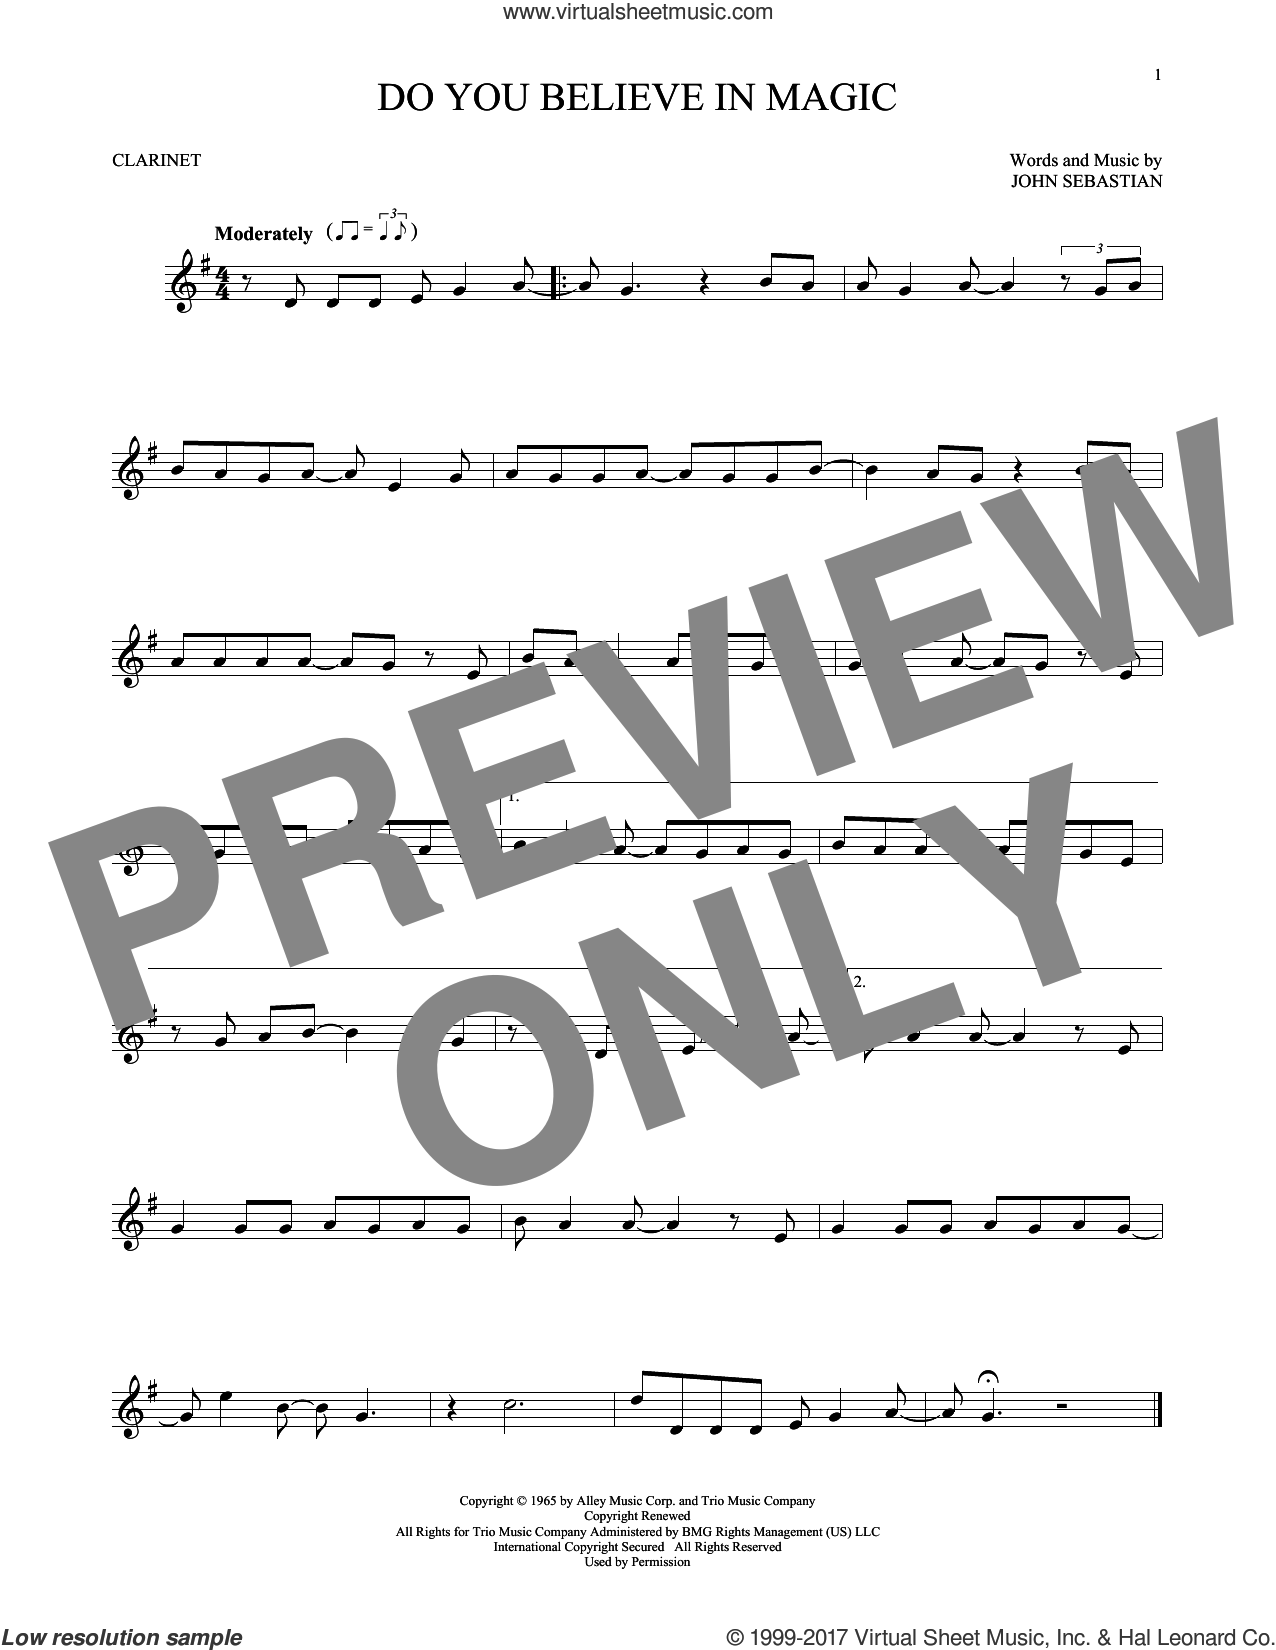 Do You Believe In Magic sheet music for clarinet solo by Lovin' Spoonful and John Sebastian, intermediate skill level